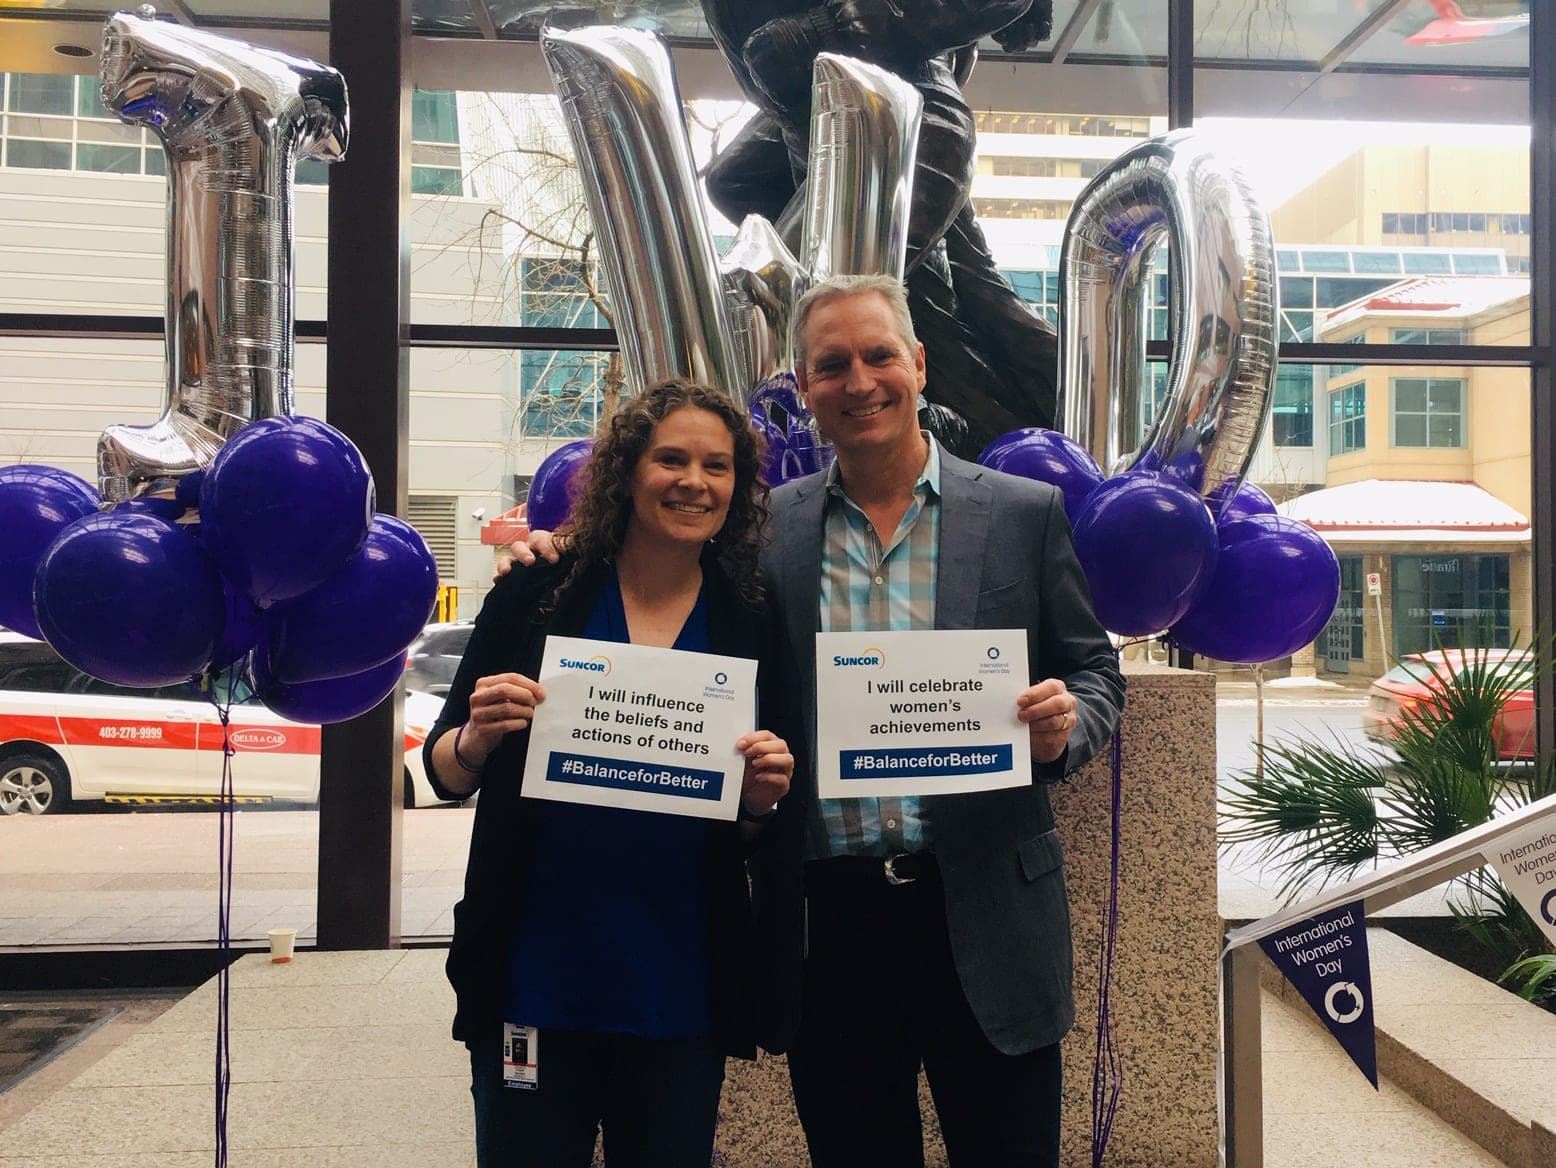 Suncor employee, Meredith McKay, and CEO Mark Little standing together in the Suncor lobby in Calgary, Alberta.